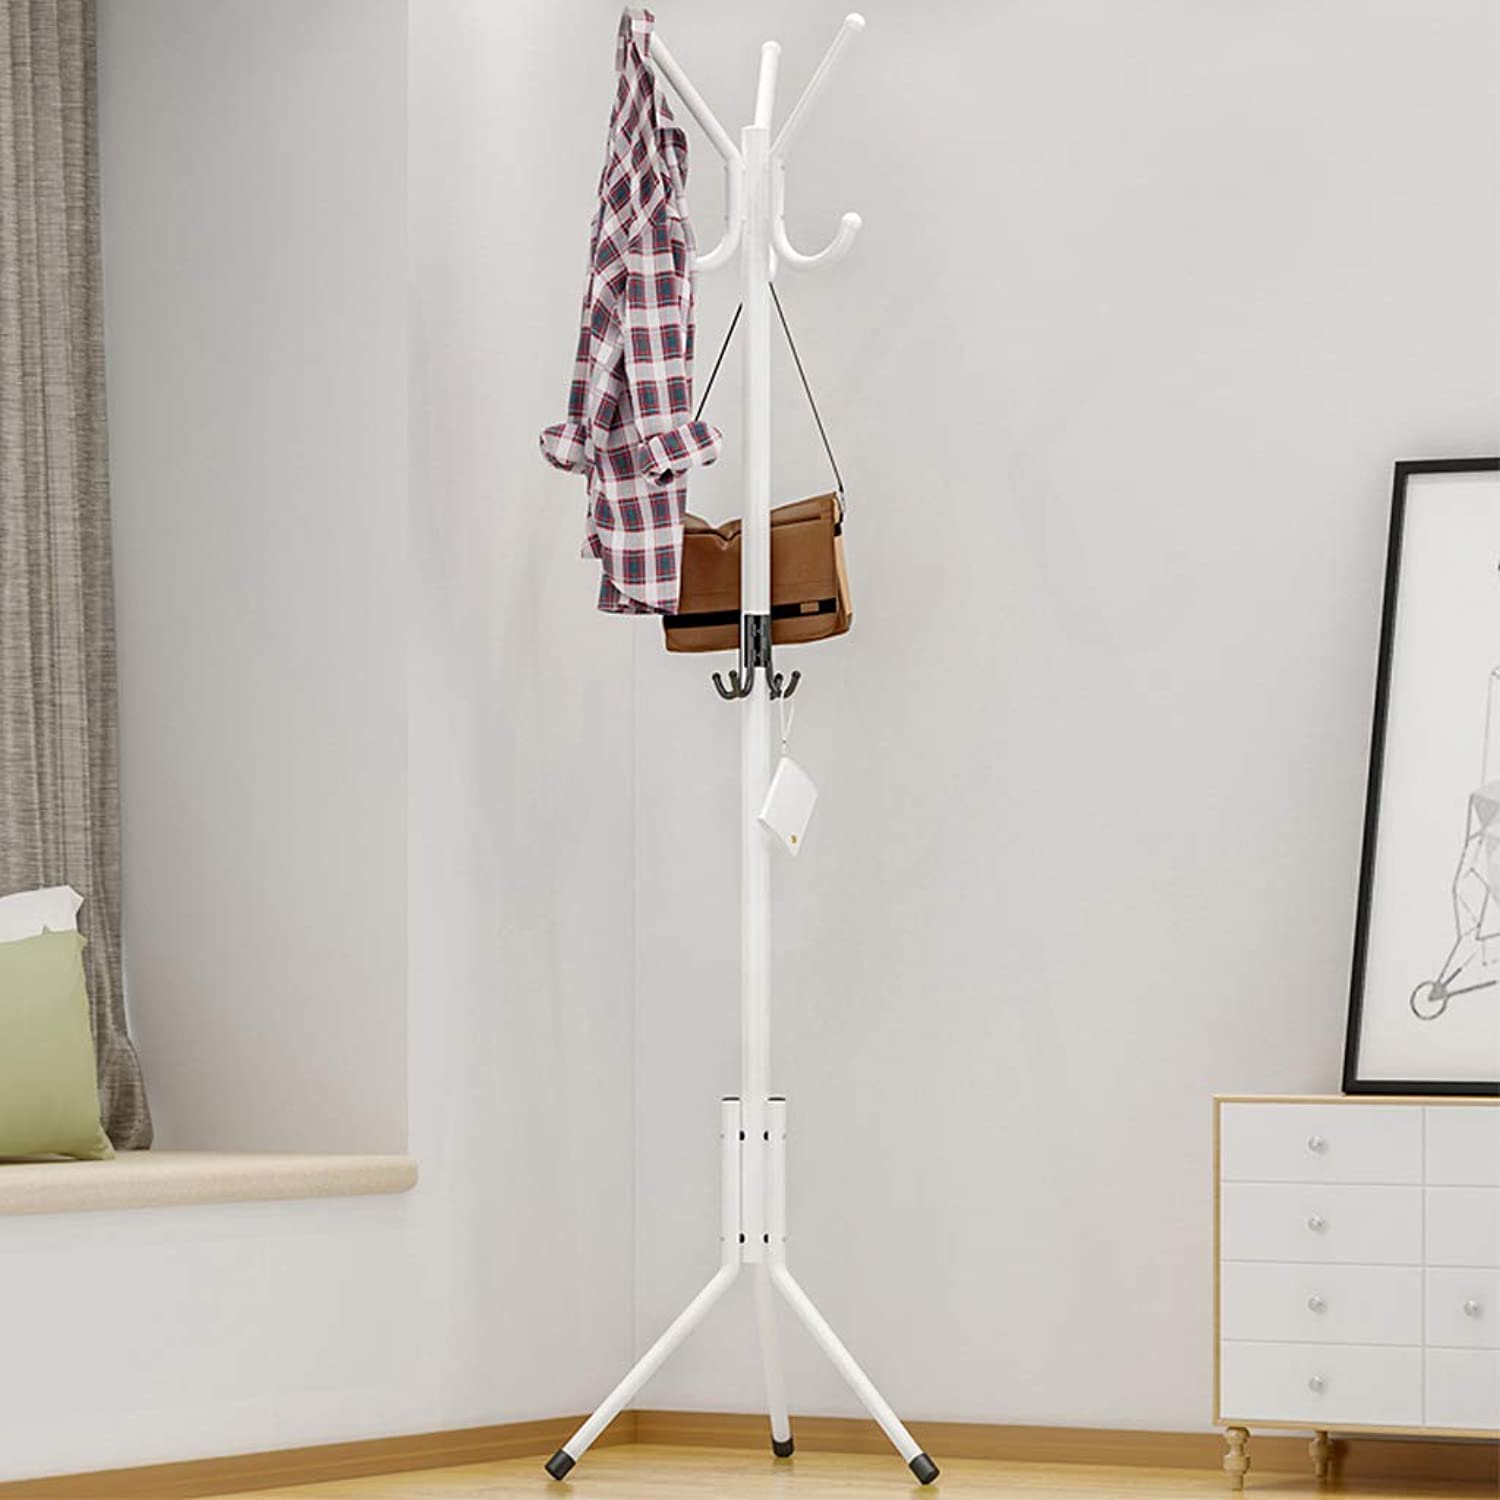 GSHWJS Modern Minimalist Floor-Standing Coat Rack Creative Bedroom Living Room Fashion Wrought Iron Rack 172x52cm Coat Rack (color   White)